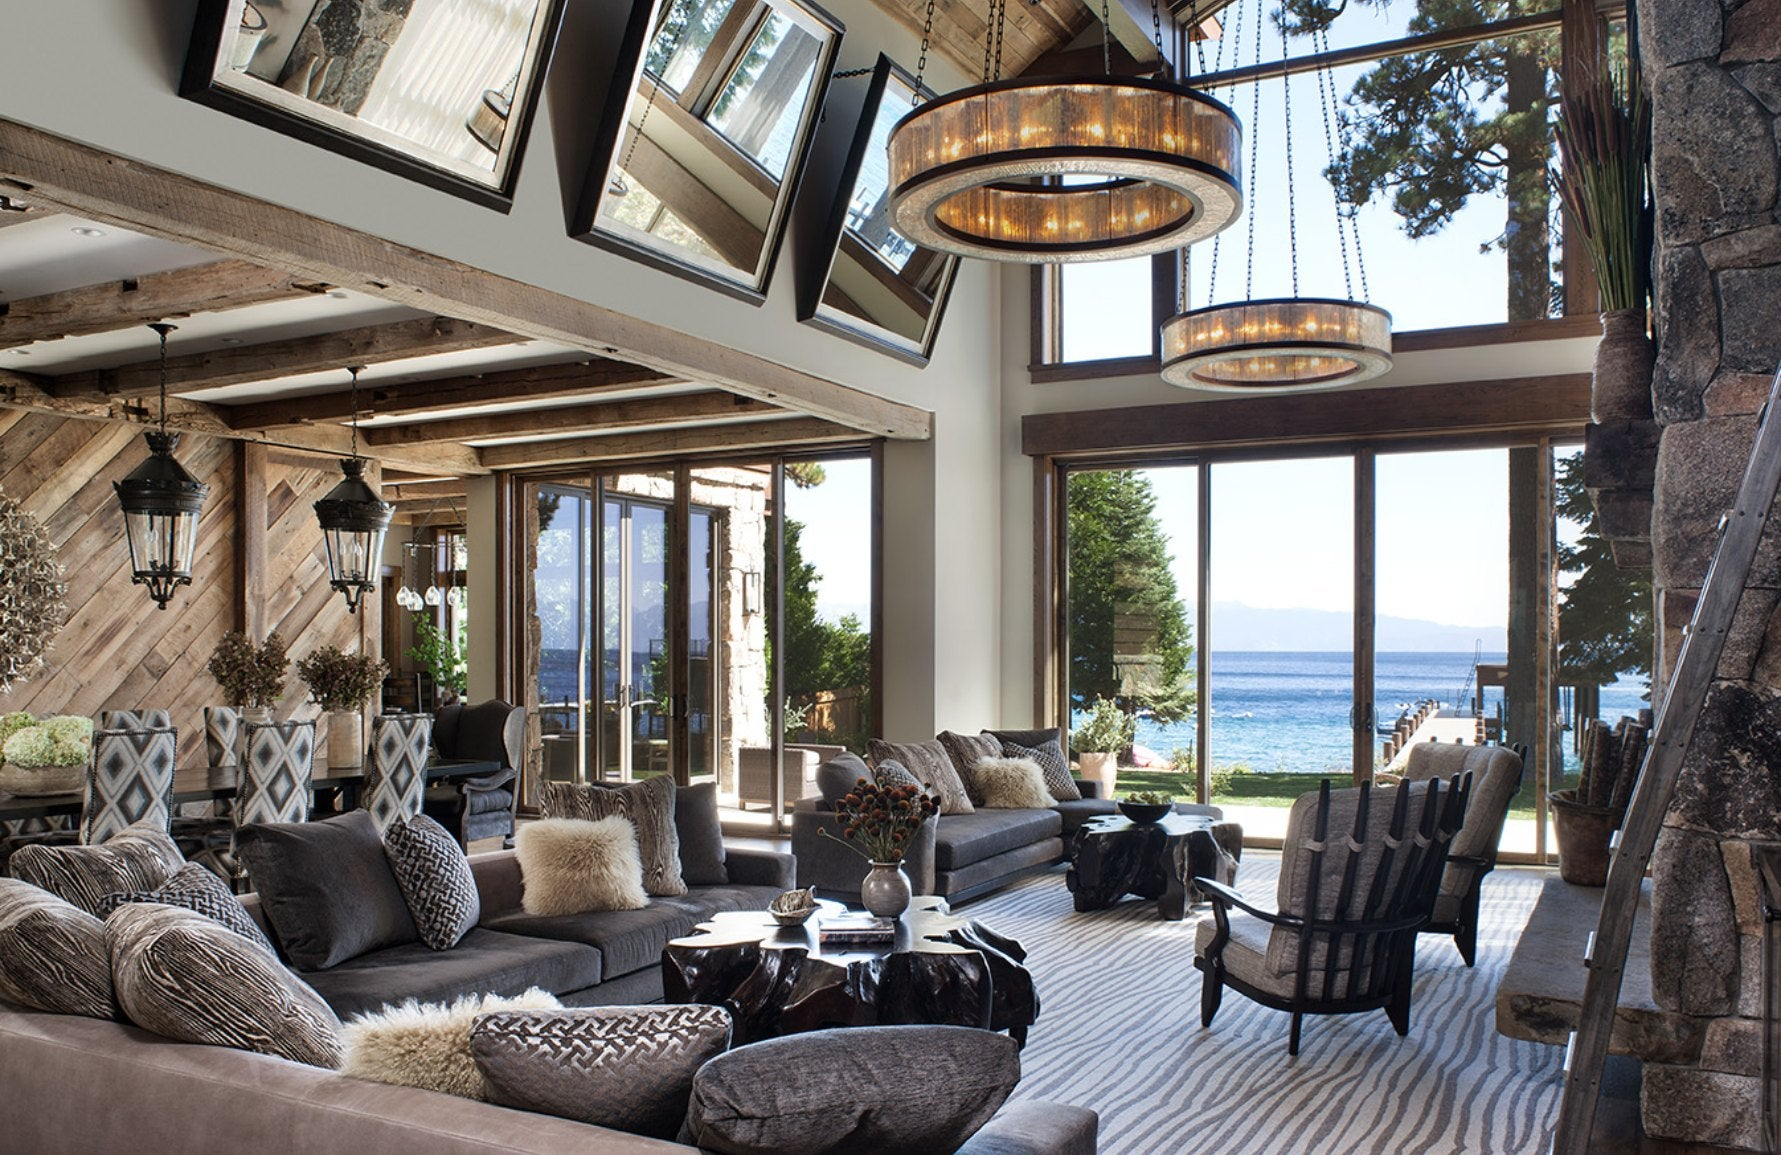 Top 10 American Interior Designers You Need To Know - Jeff Andrews - LuxDeco Style Guide